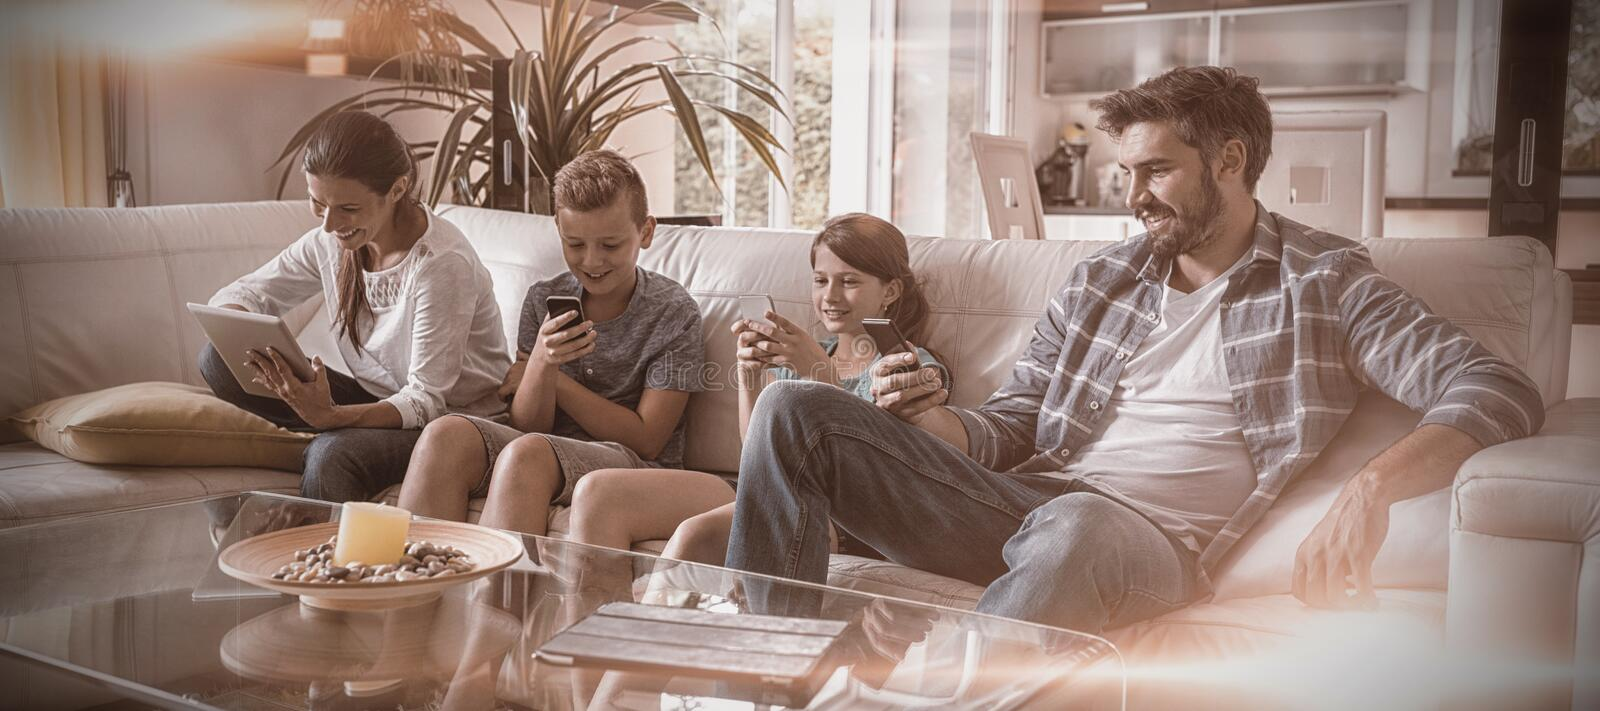 Family using digital tablet and mobile phone in living room stock images